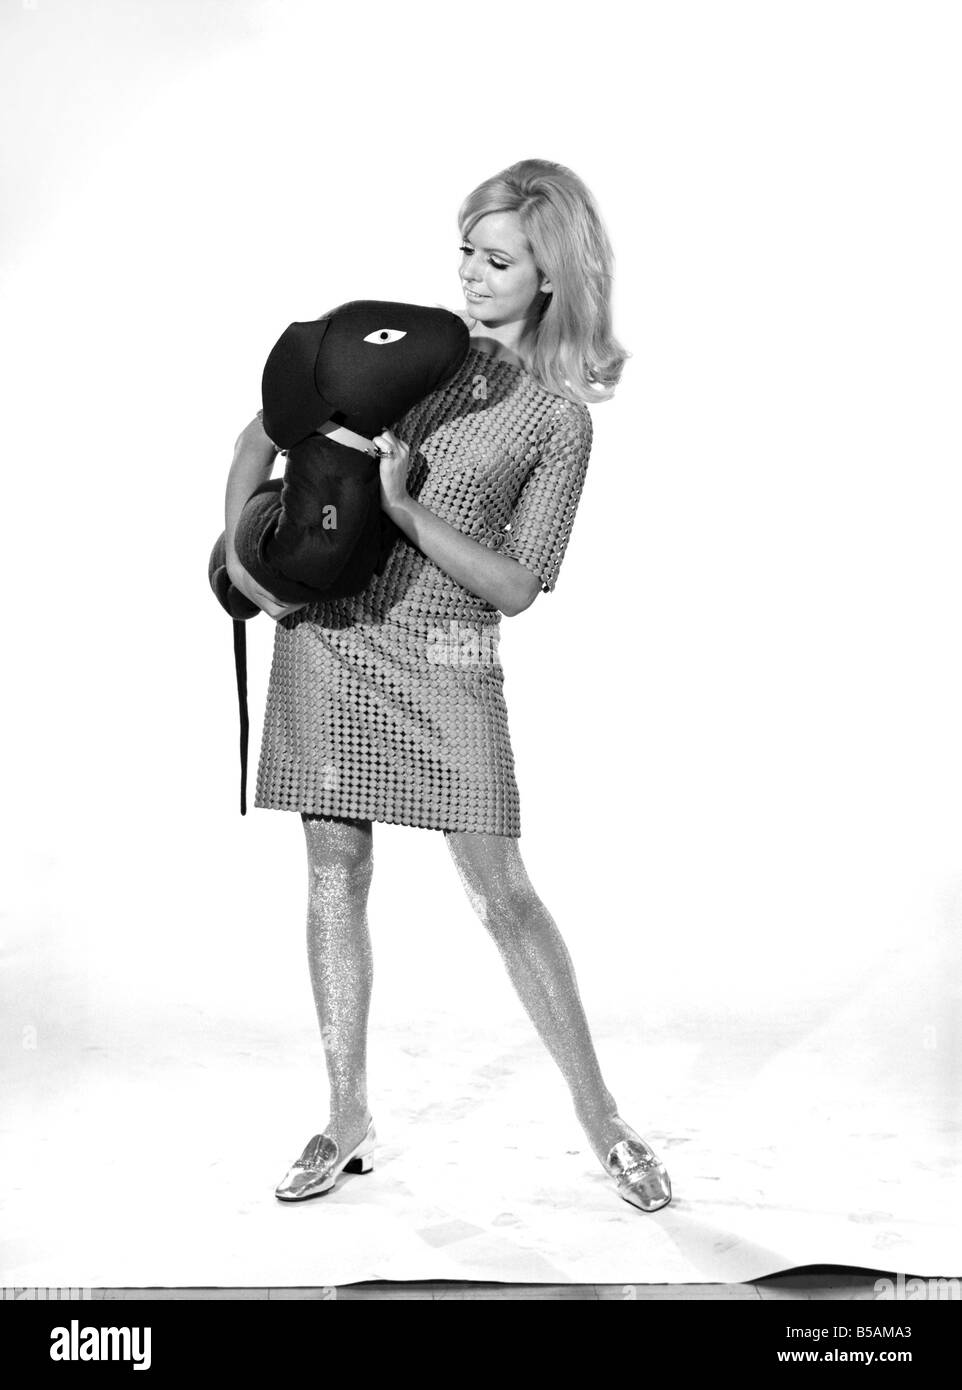 Model Anna Maria Greaves with Roly dog soft toy and draft excluder. 1959 D169-008 - Stock Image